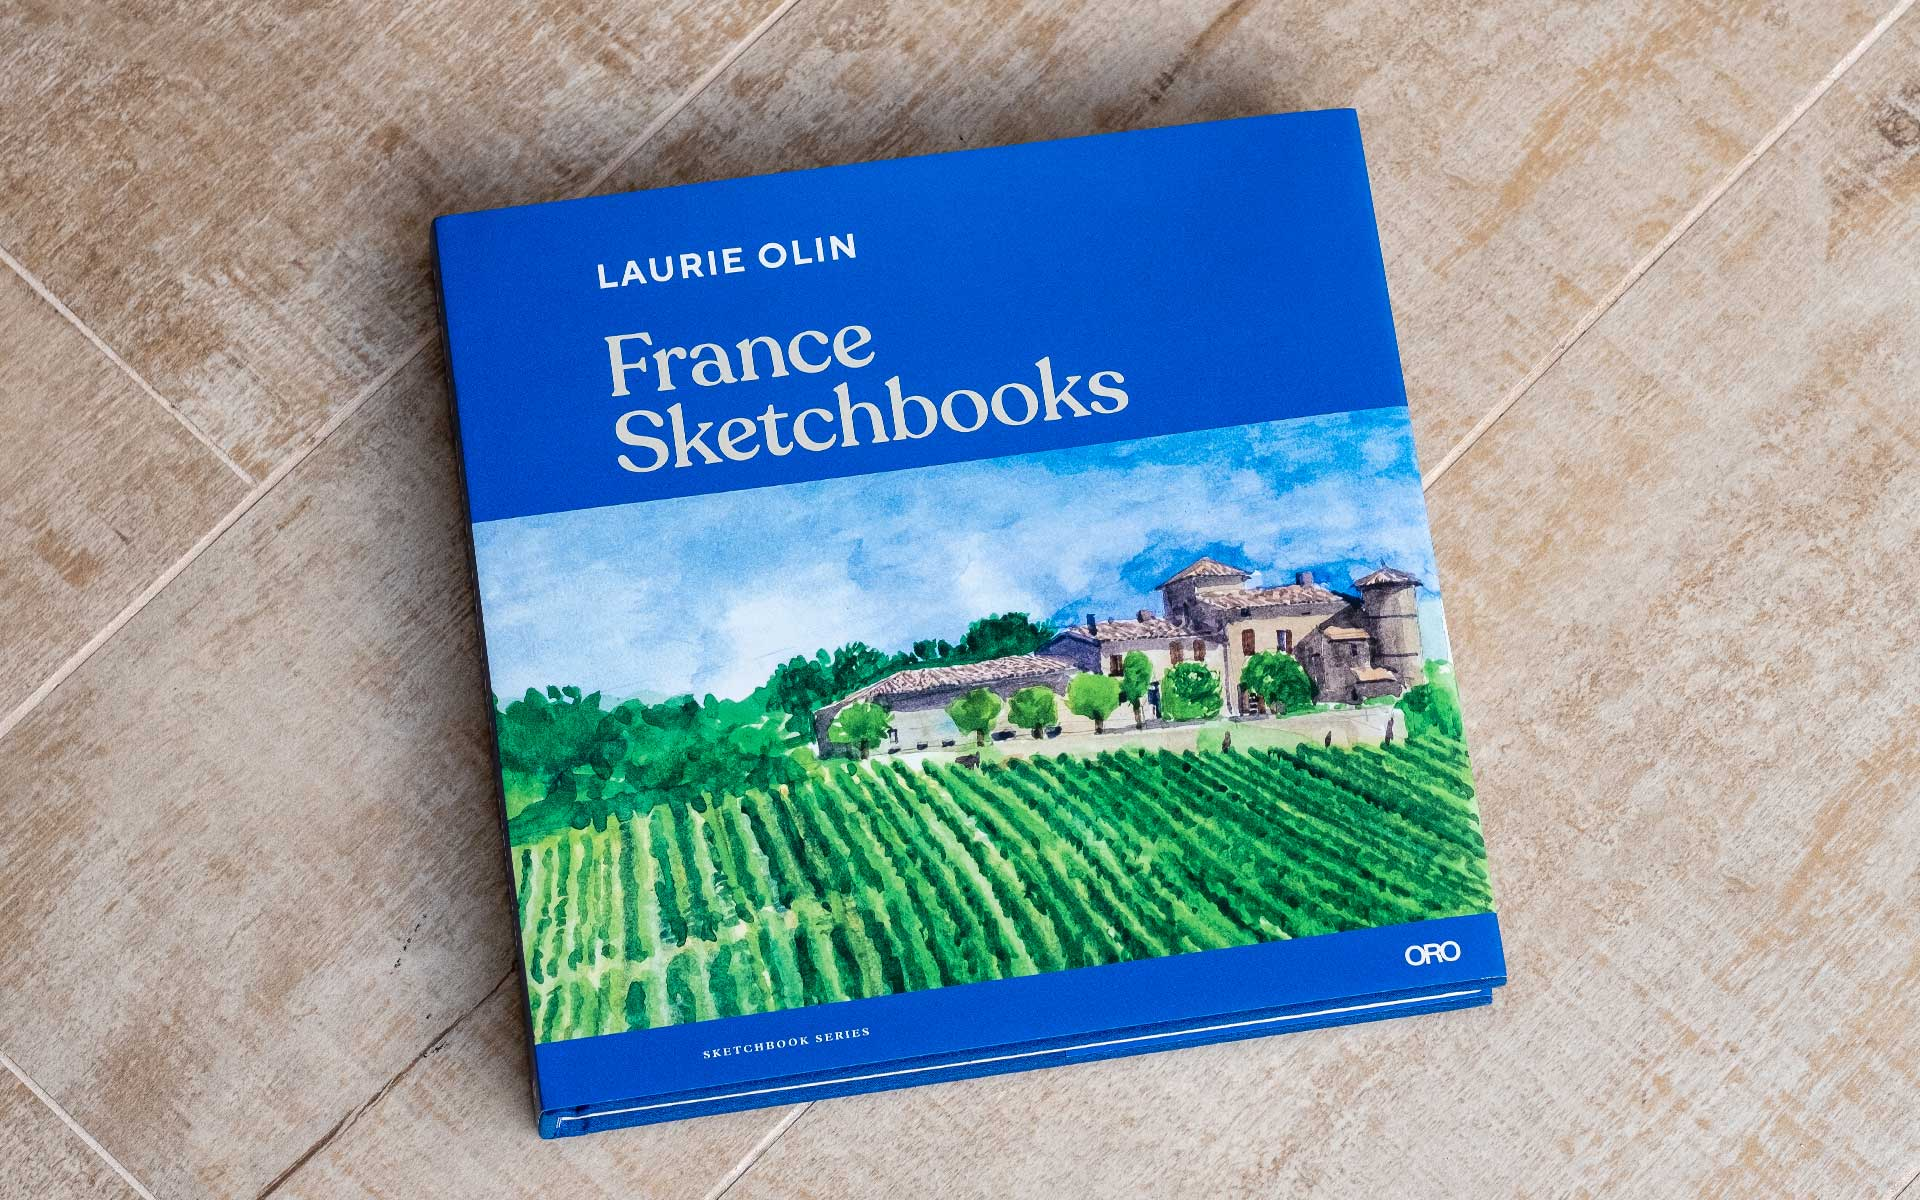 France Sketchbooks, Laurie Olin and Pablo Mandel